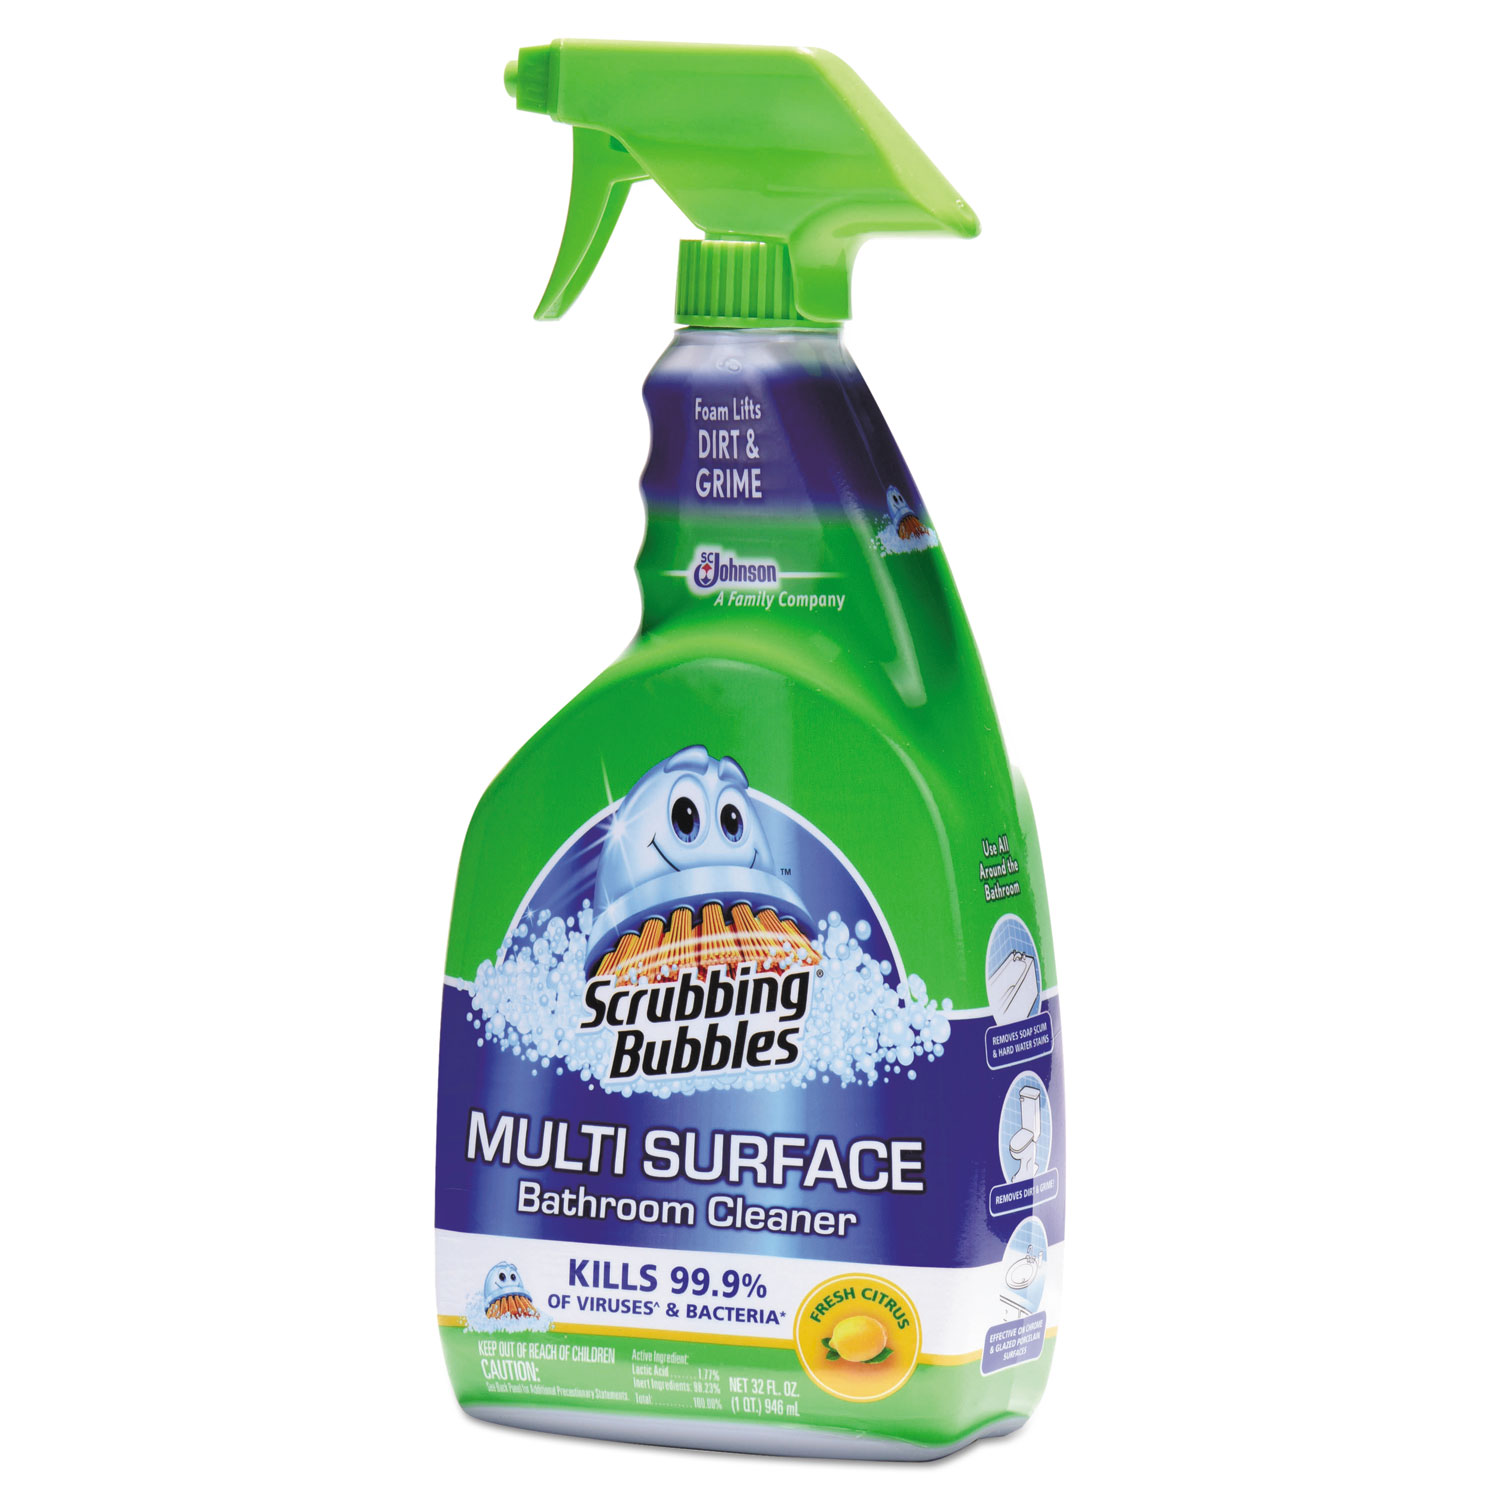 multi surface bathroom cleaner by scrubbing bubbles